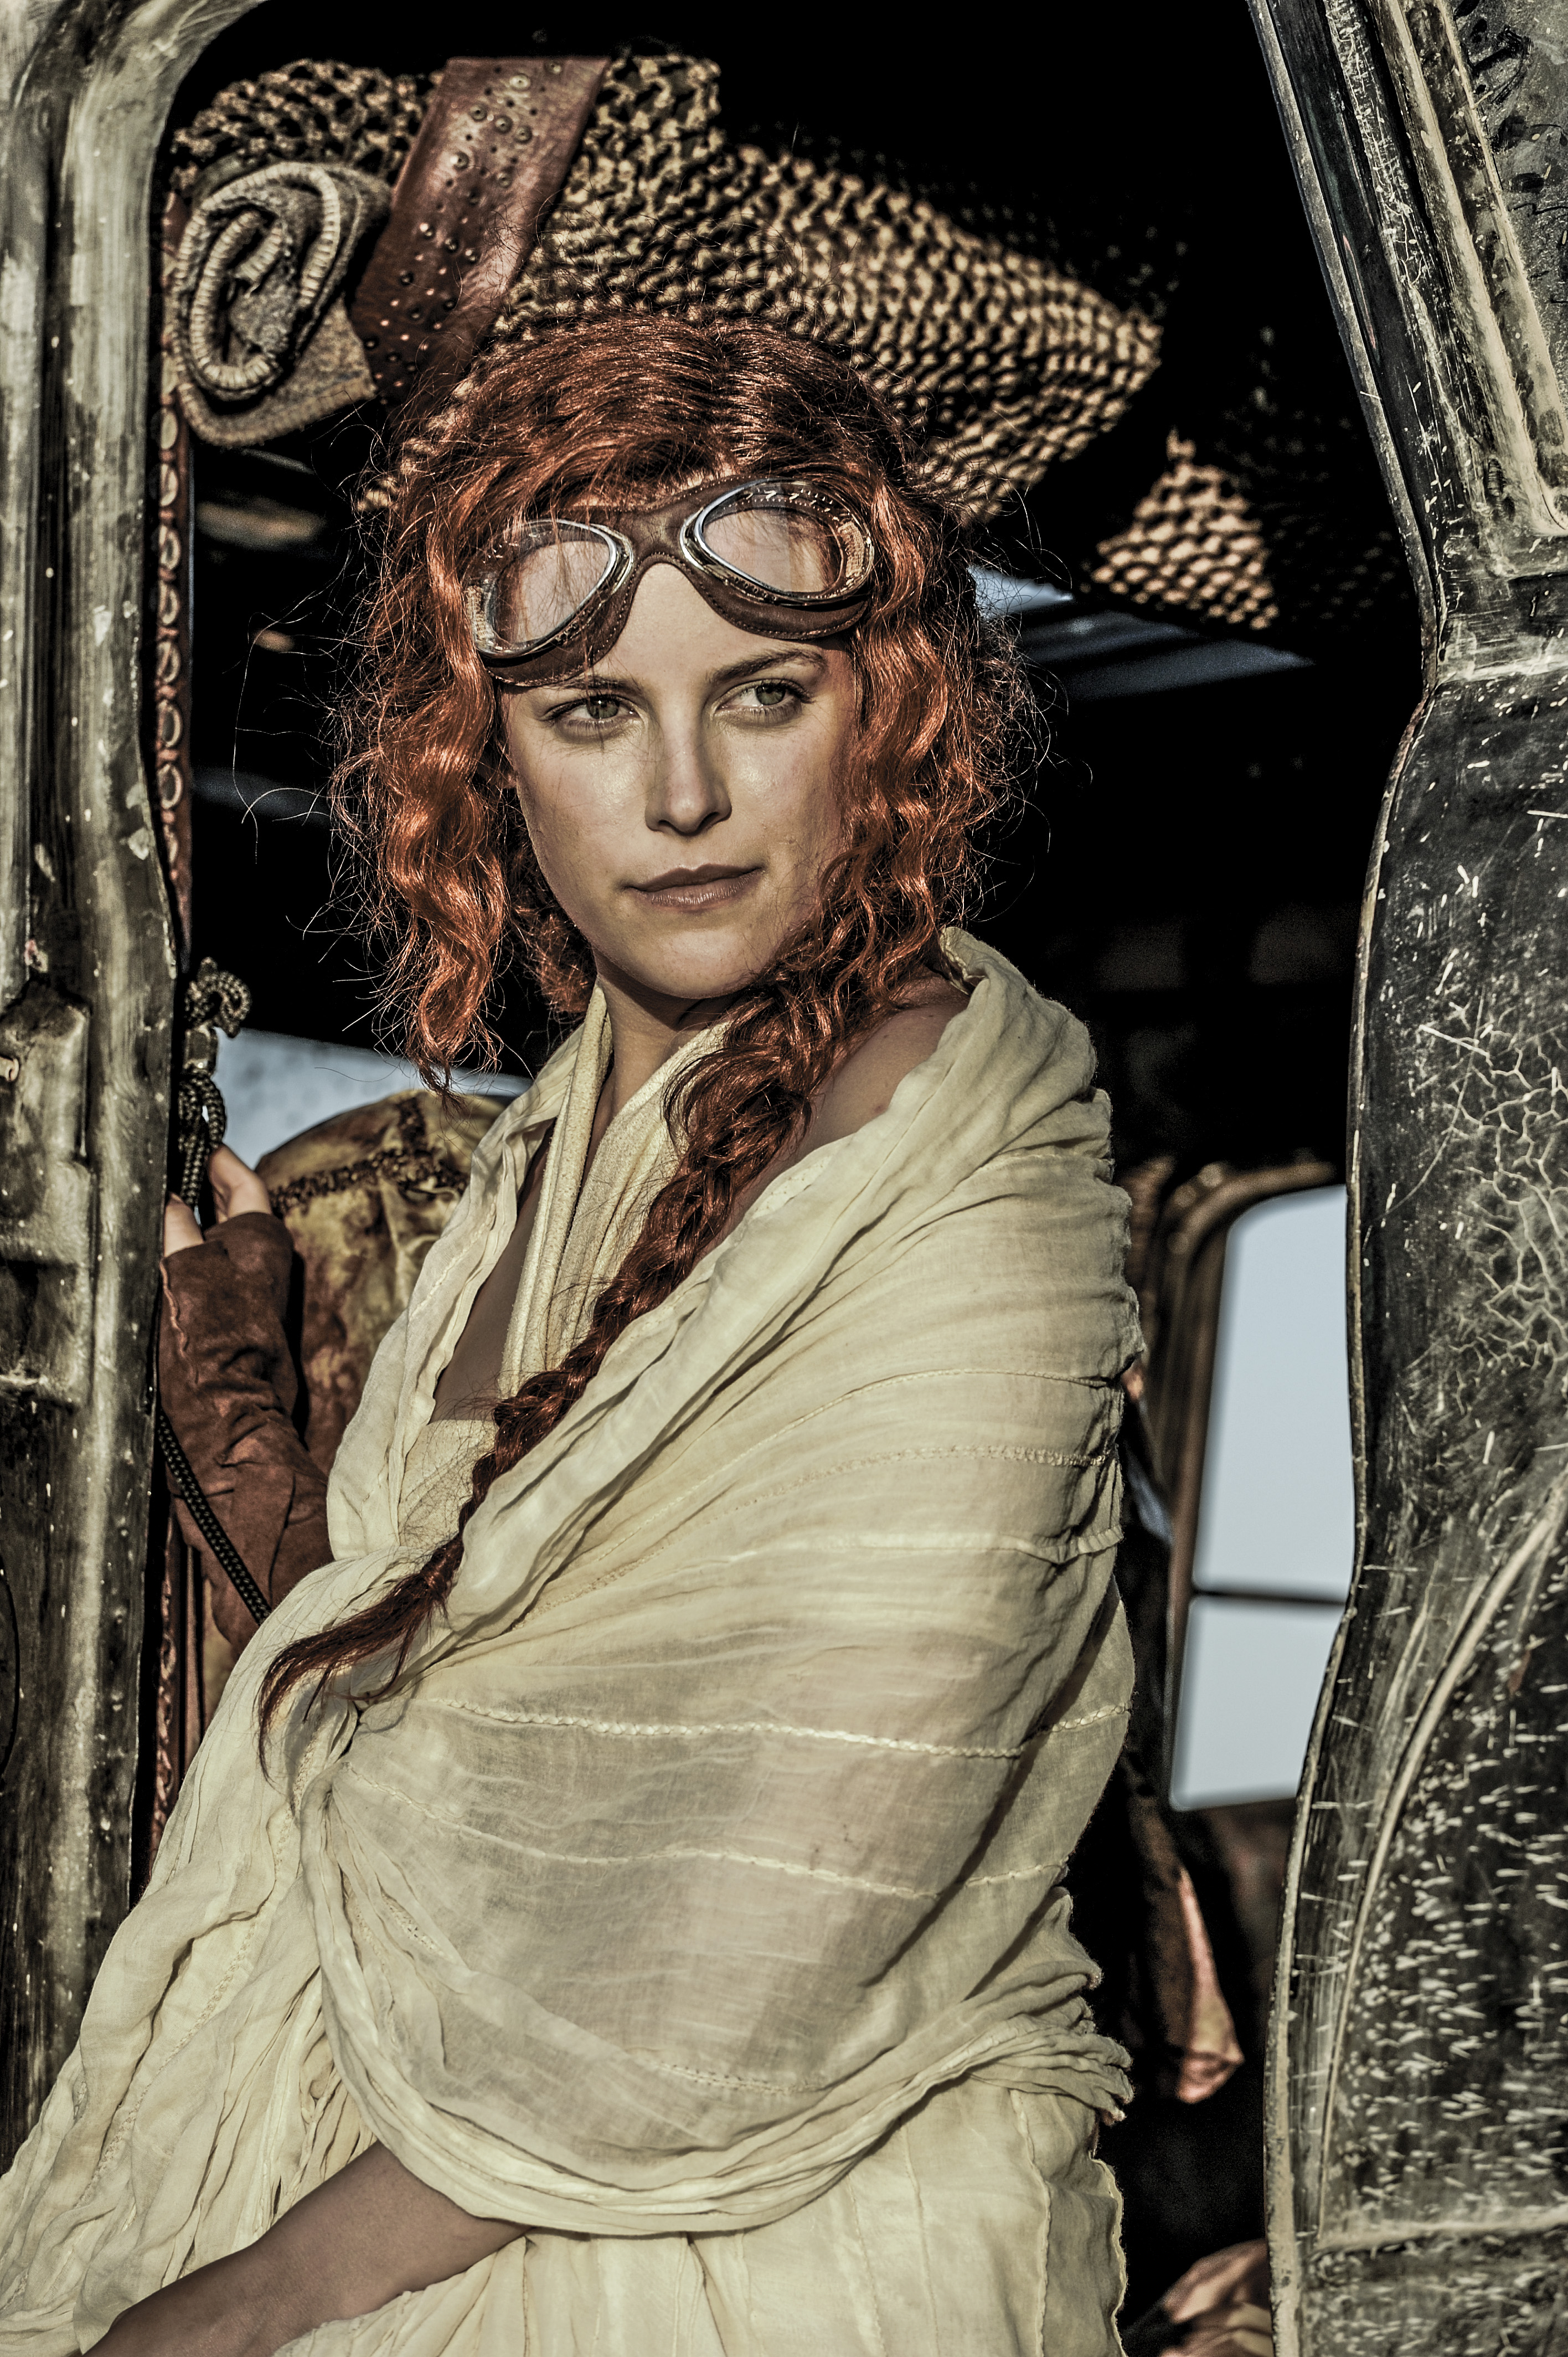 Riley Keough in Mad Max: Fury Road